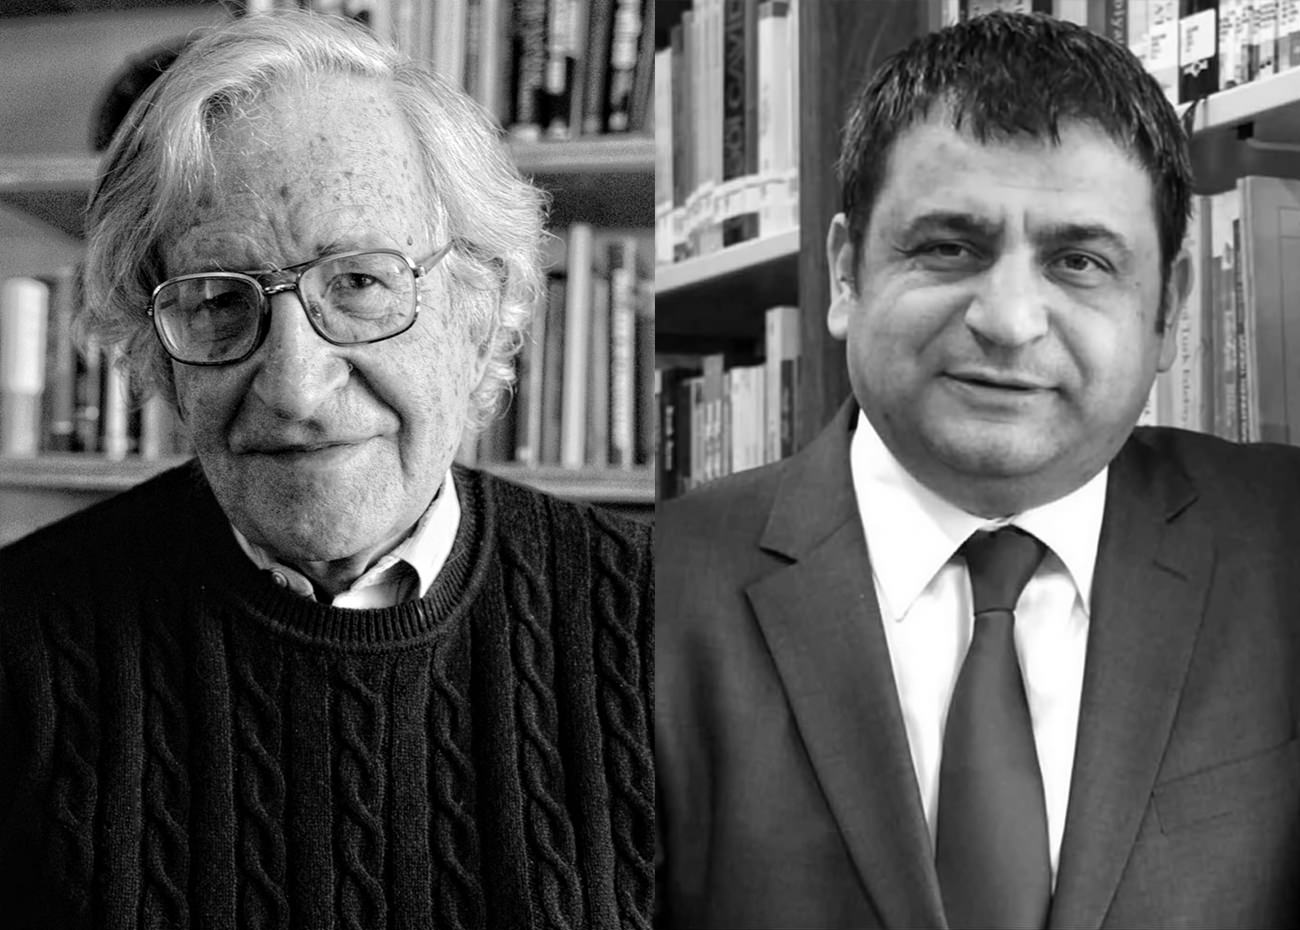 Noam Chomsky and Sedat Laciner